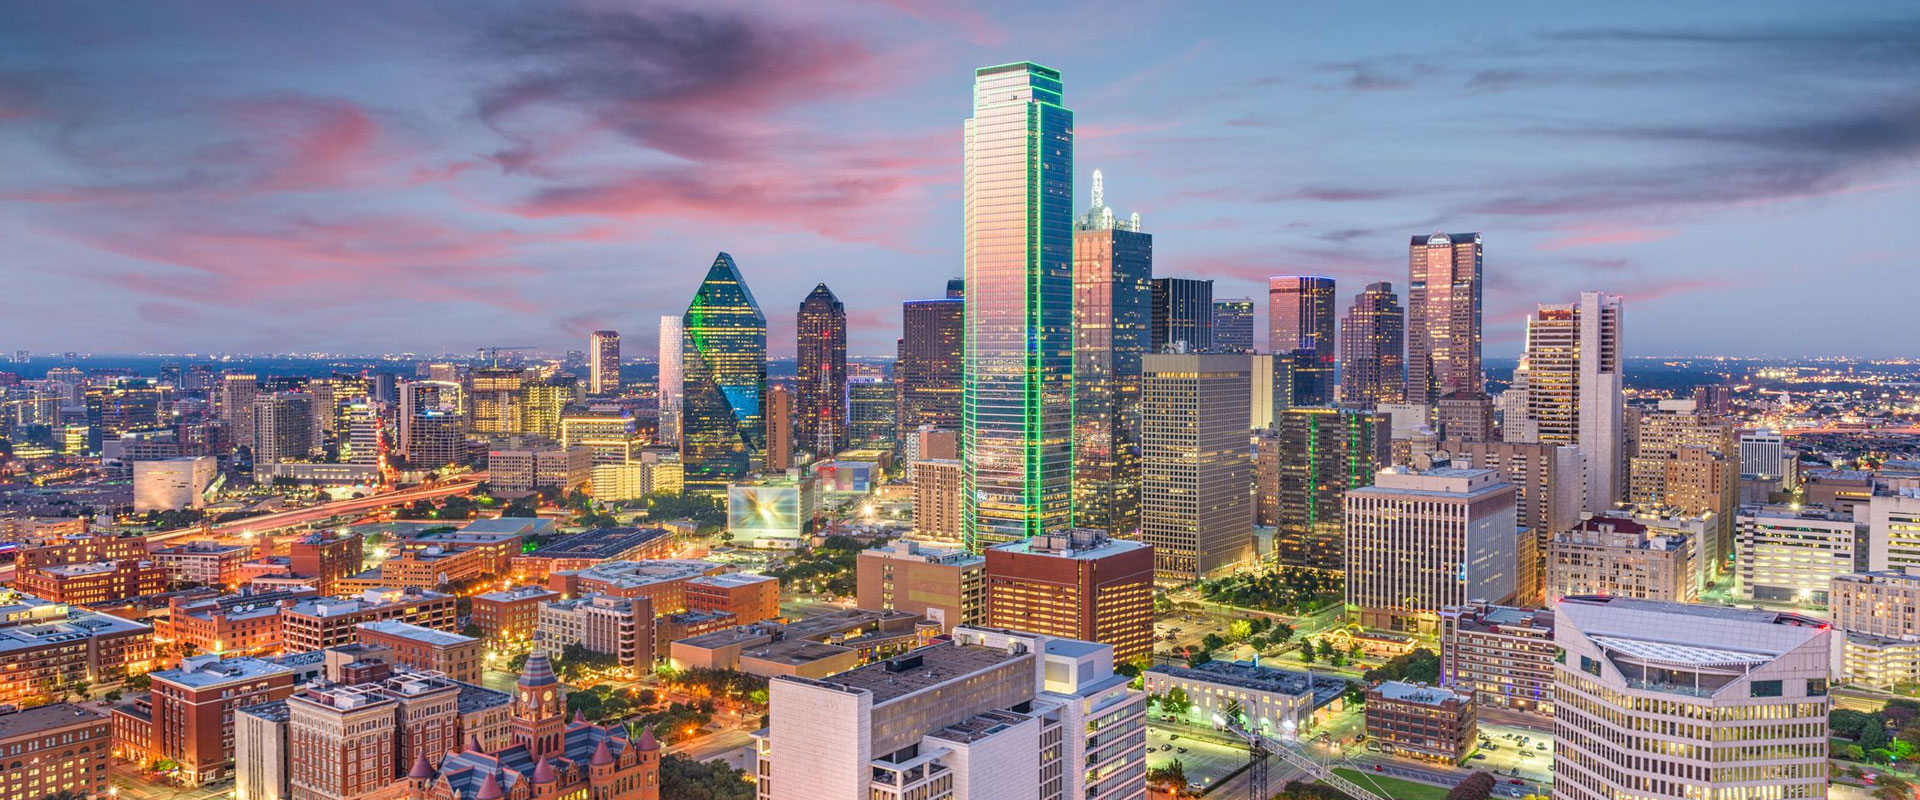 WHY TEXAS CITIES SHOULD HOST THE 2026 WORLD CUP